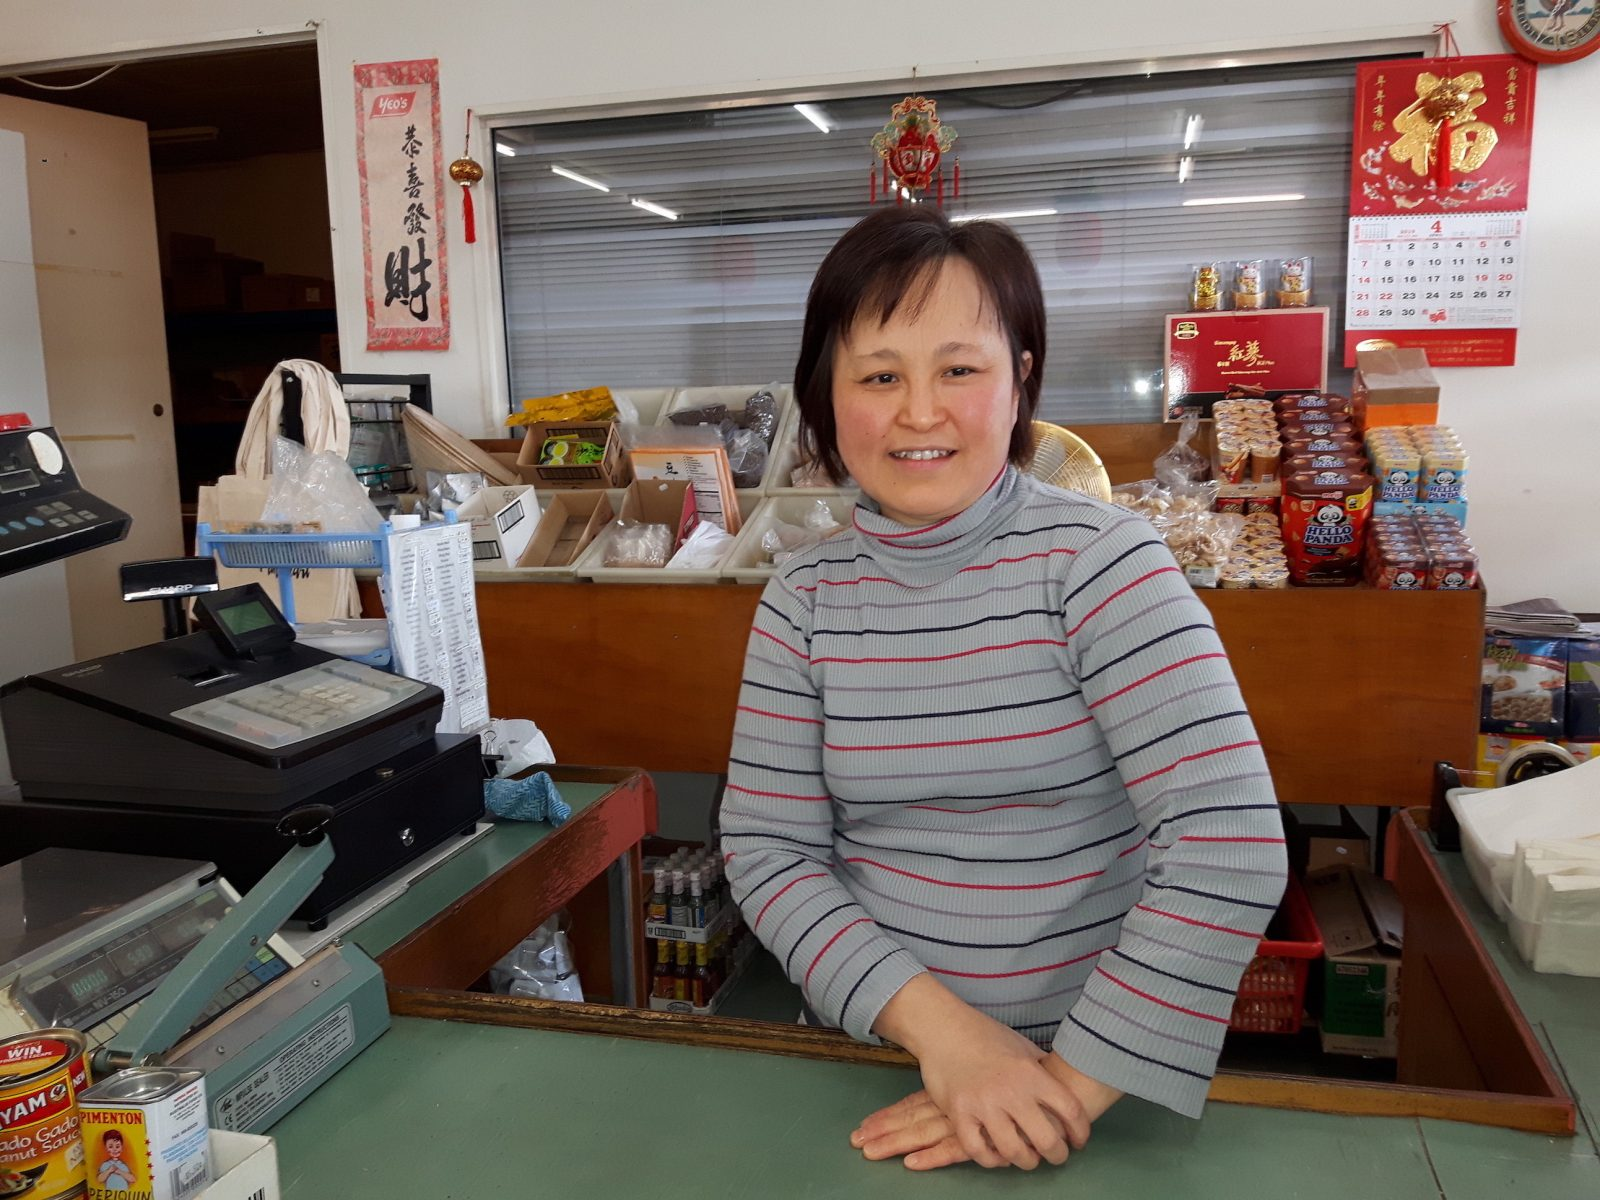 A woman smiling behind the counter of her mini mart in Fremantle.